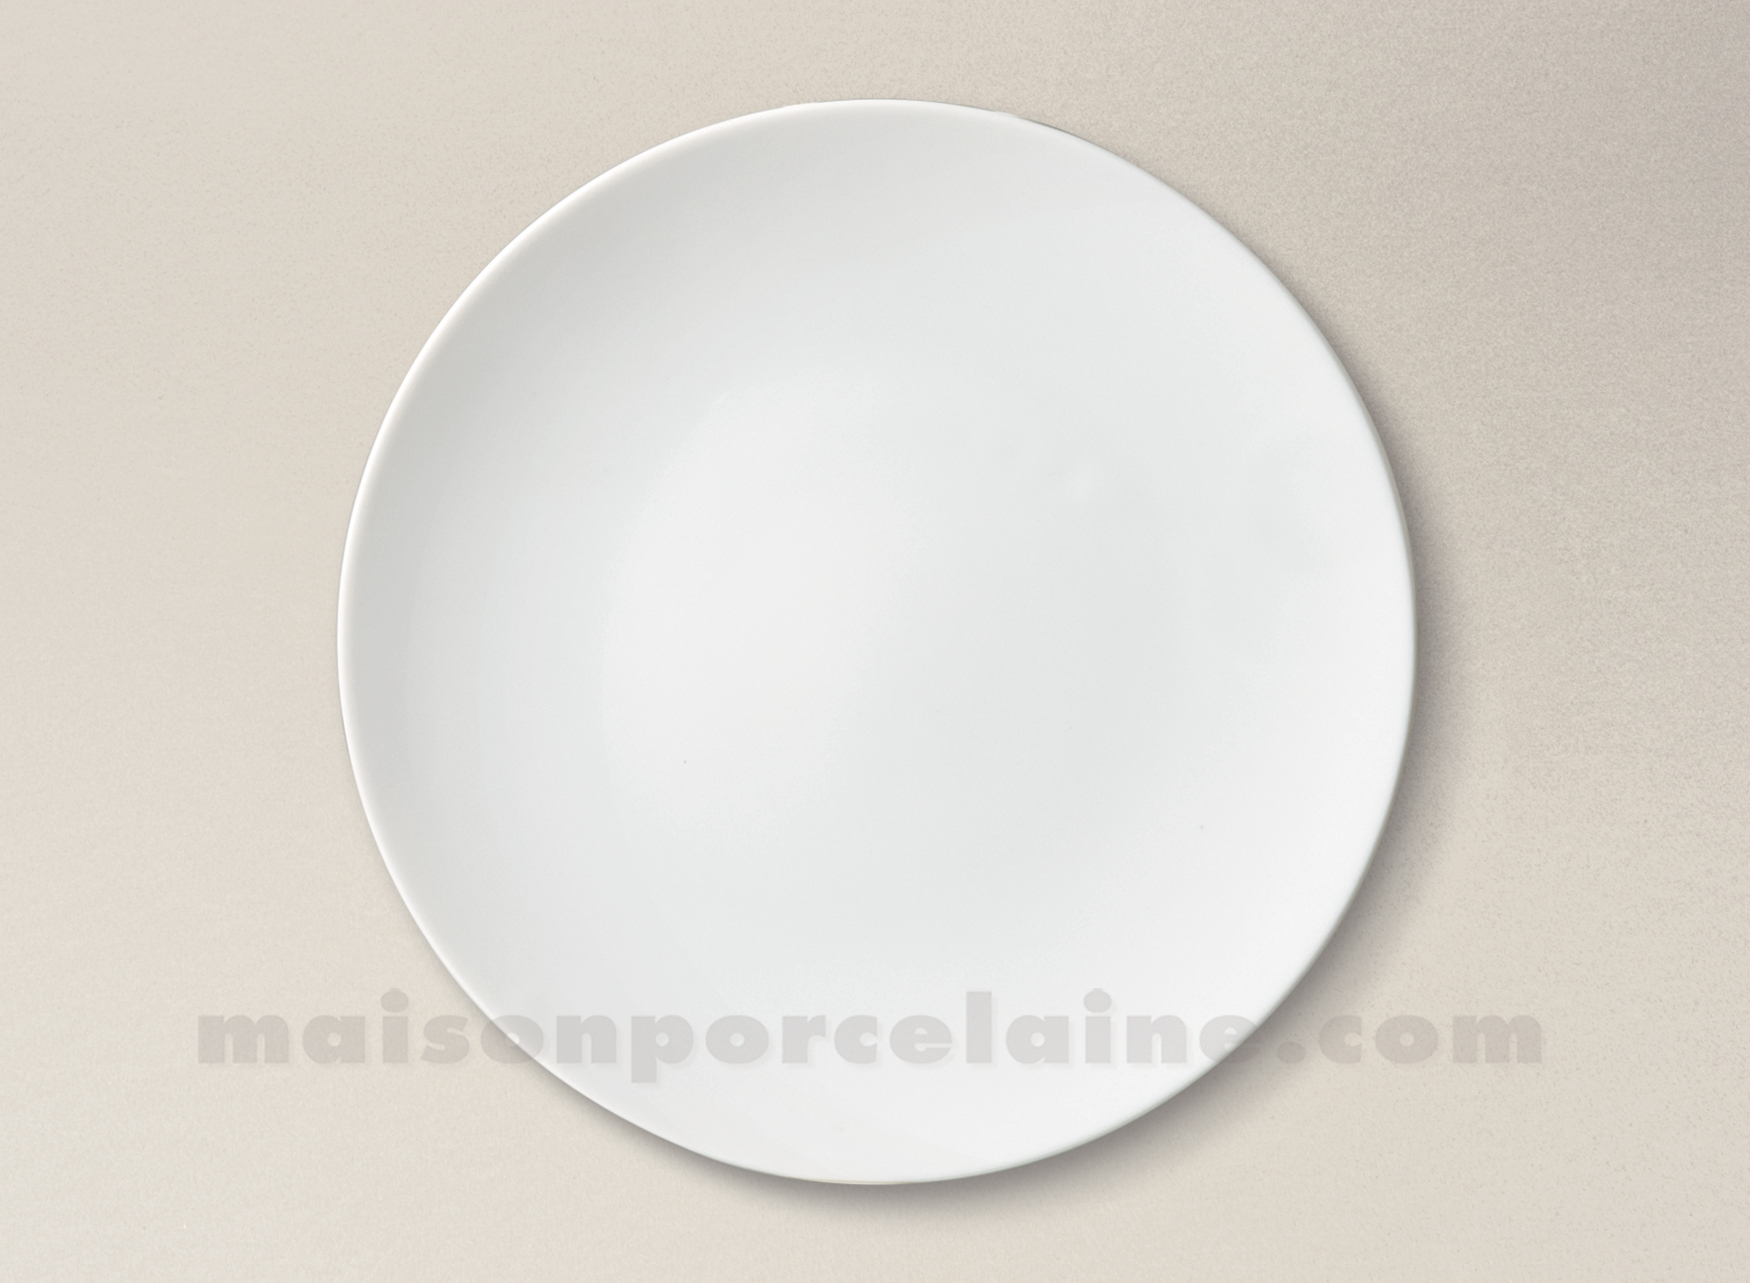 assiette plate porcelaine blanche artois d25 maison de la porcelaine. Black Bedroom Furniture Sets. Home Design Ideas